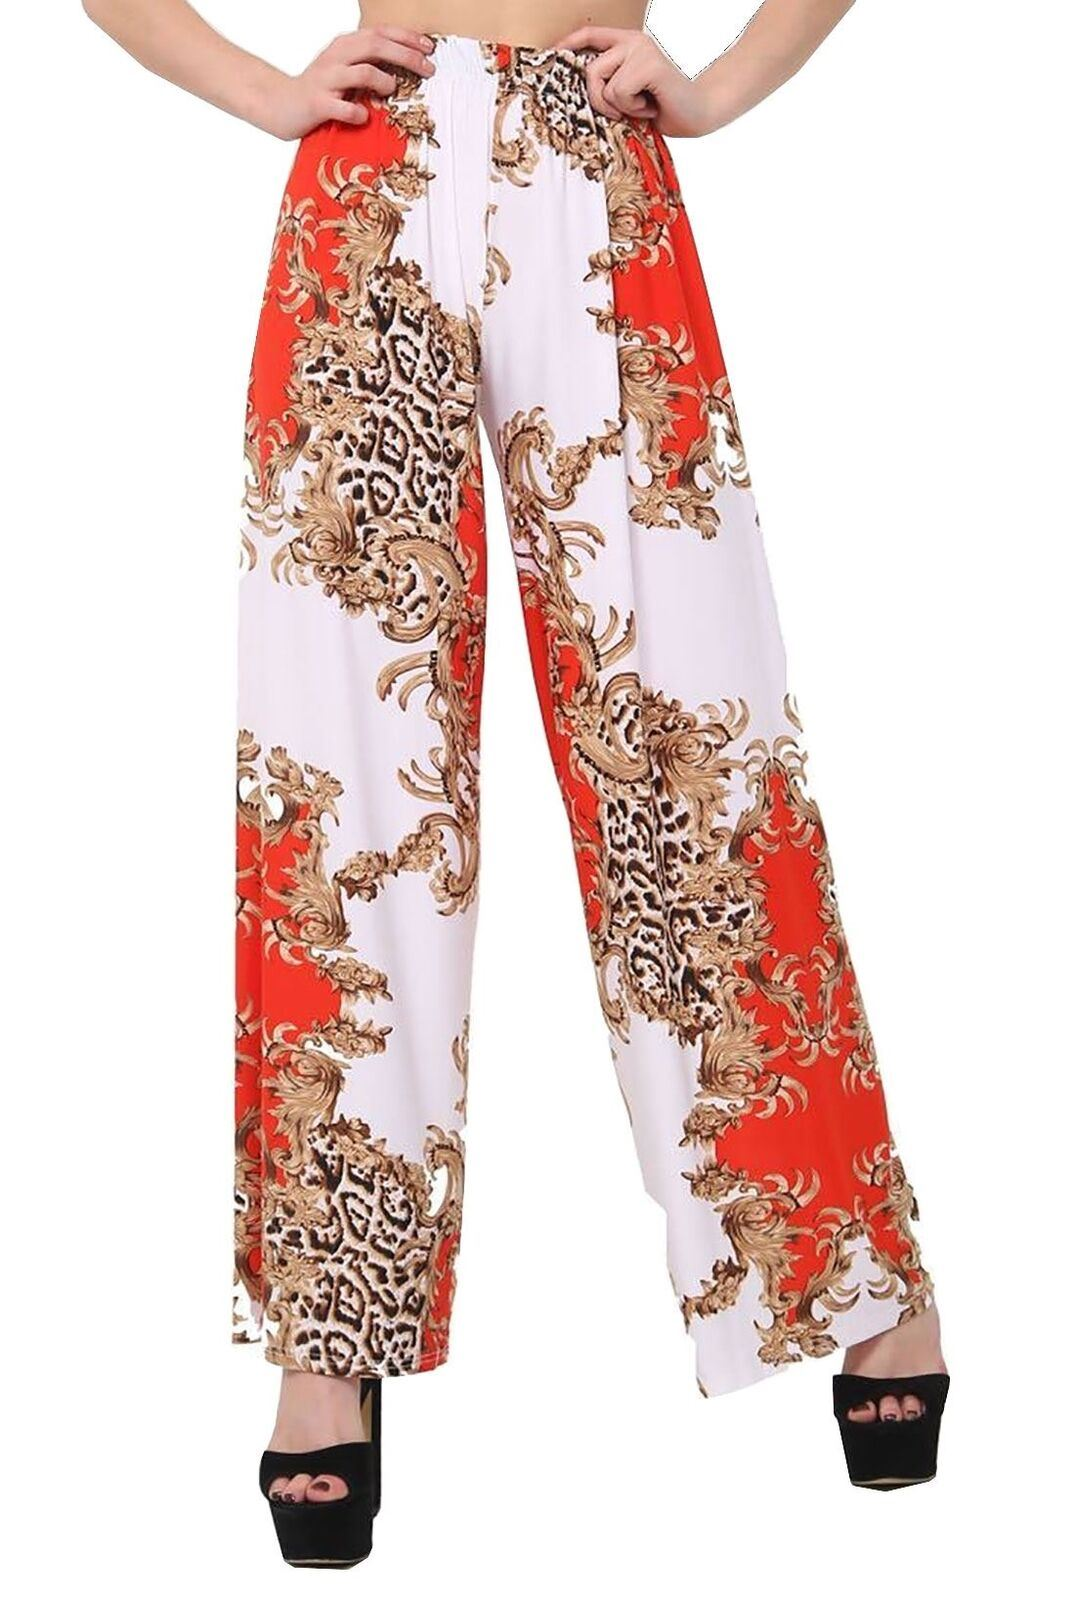 New-Ladies-Floral-Printed-Wide-Leg-Flared-Parallel-Baggy-Trousers-Pants-Palazzo thumbnail 41